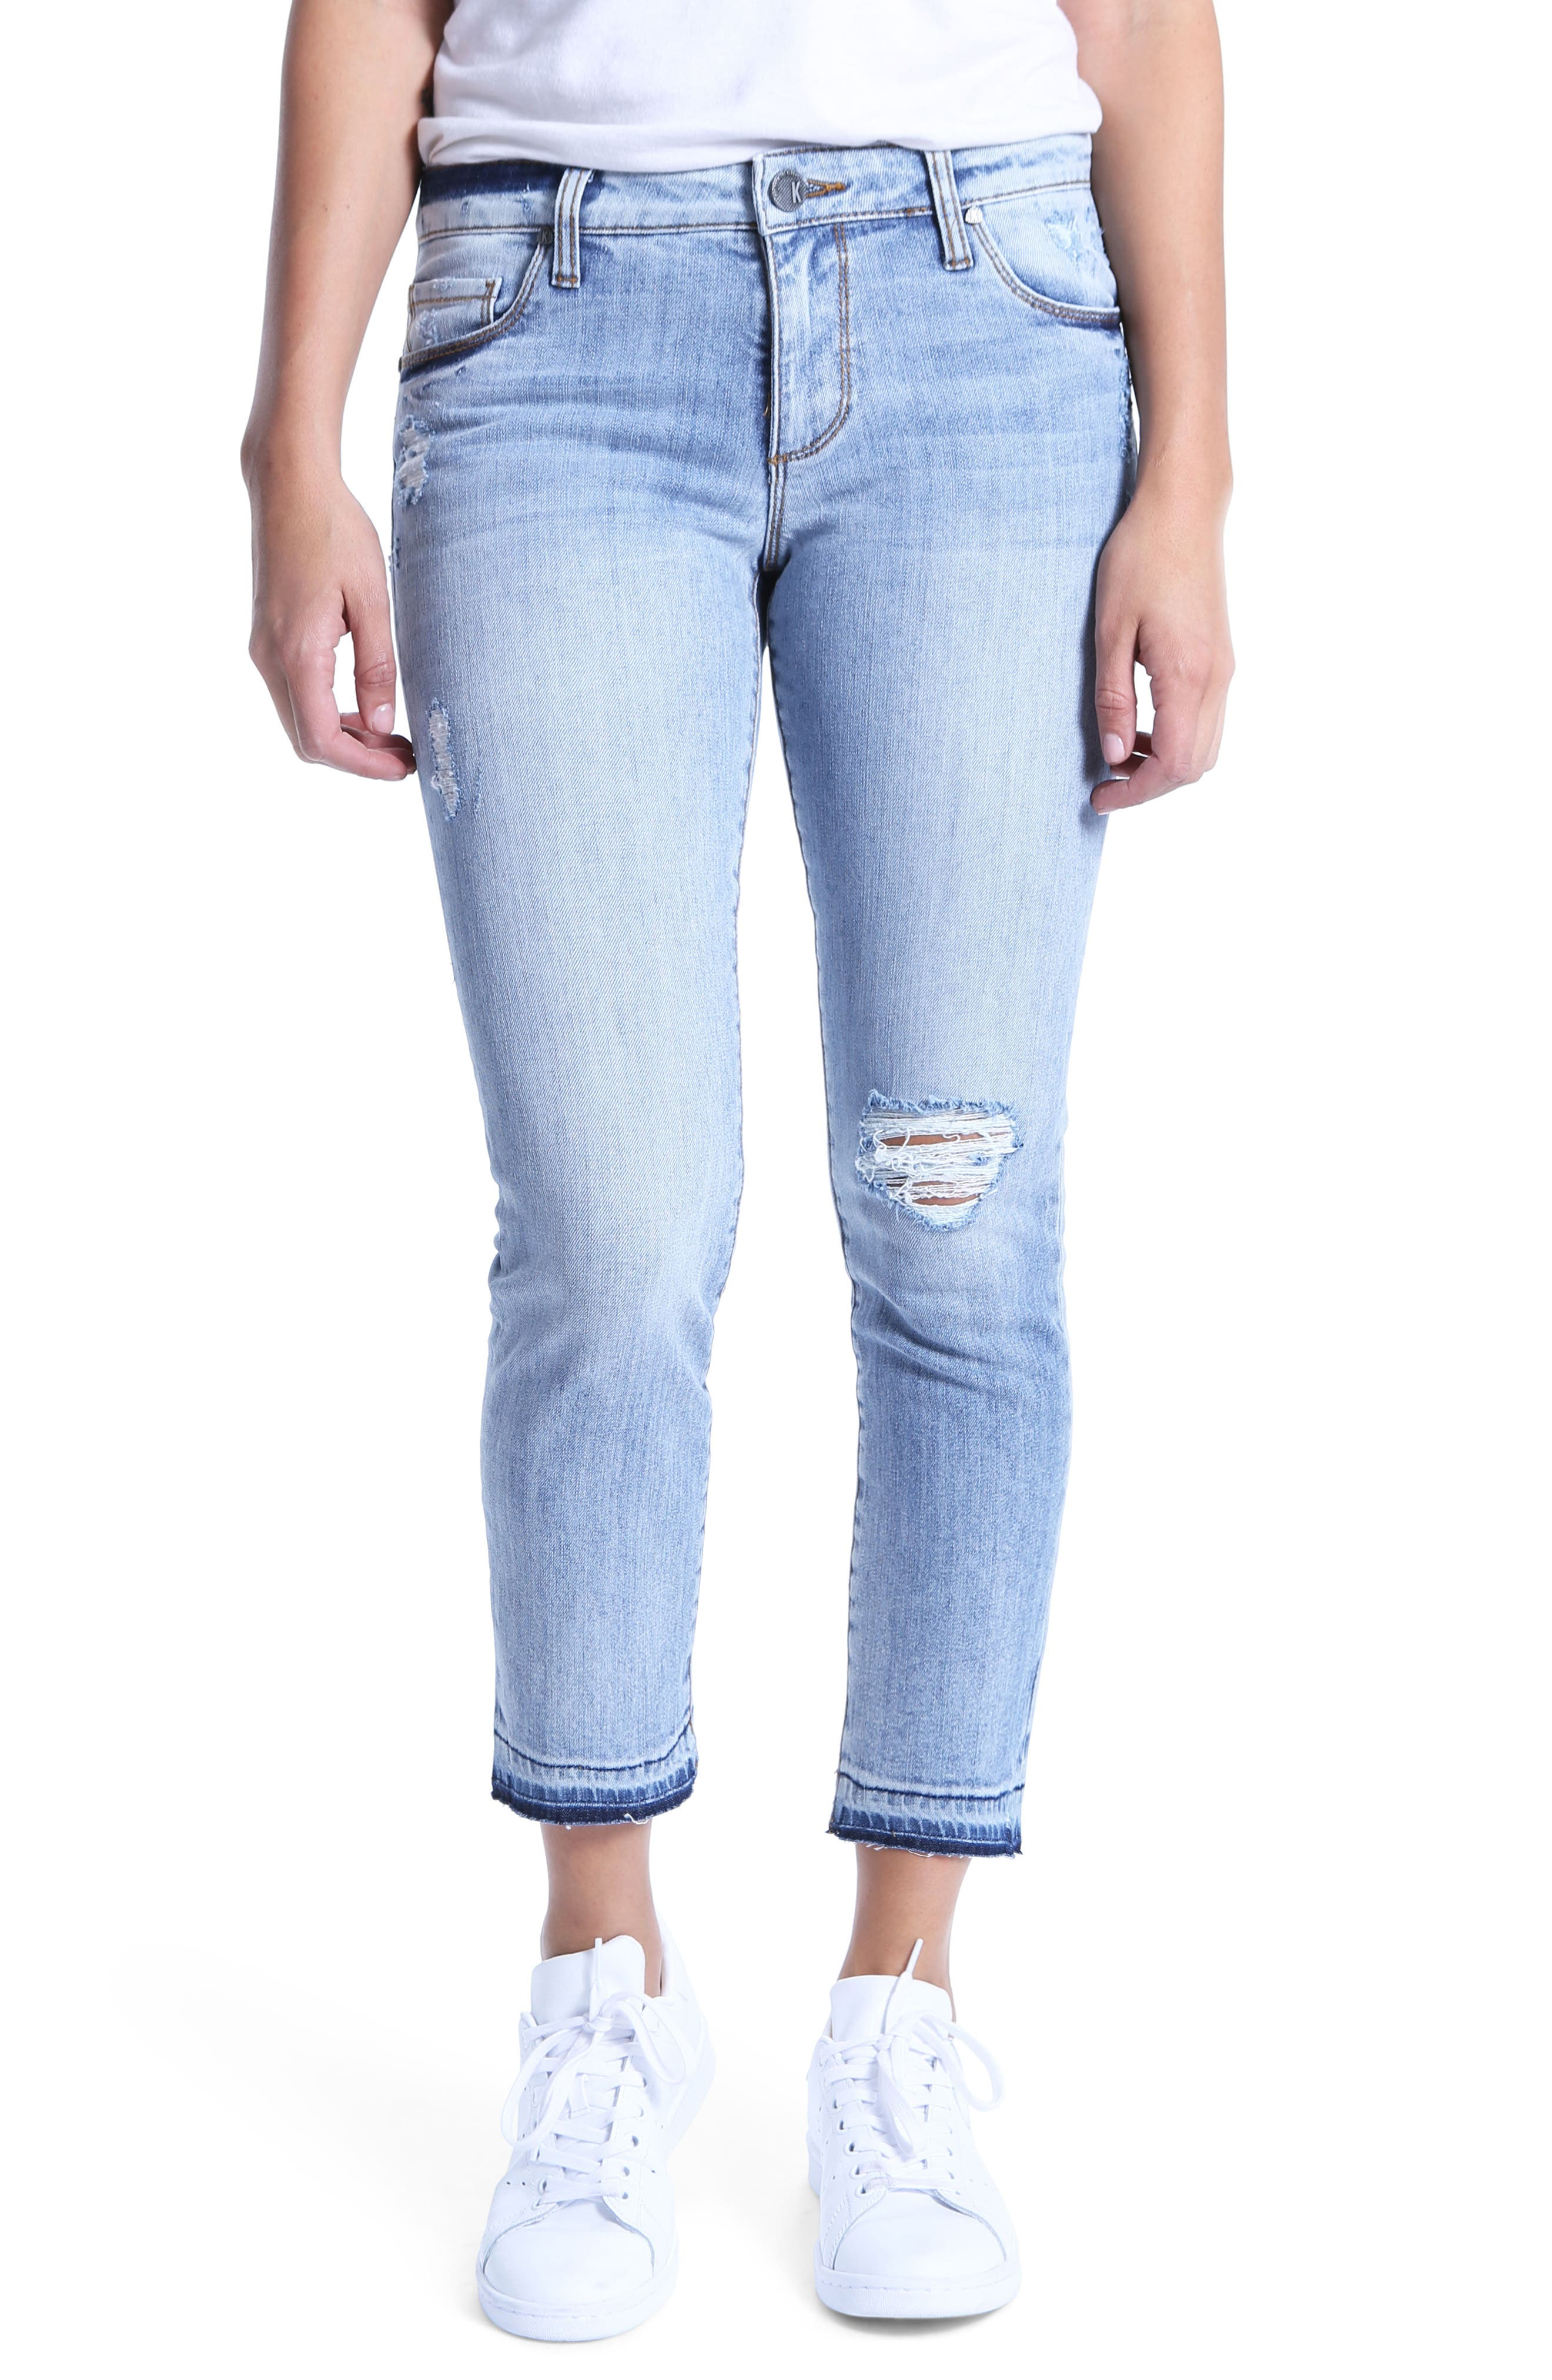 Reese Ripped Ankle Jeans,                         Main,                         color, Announce